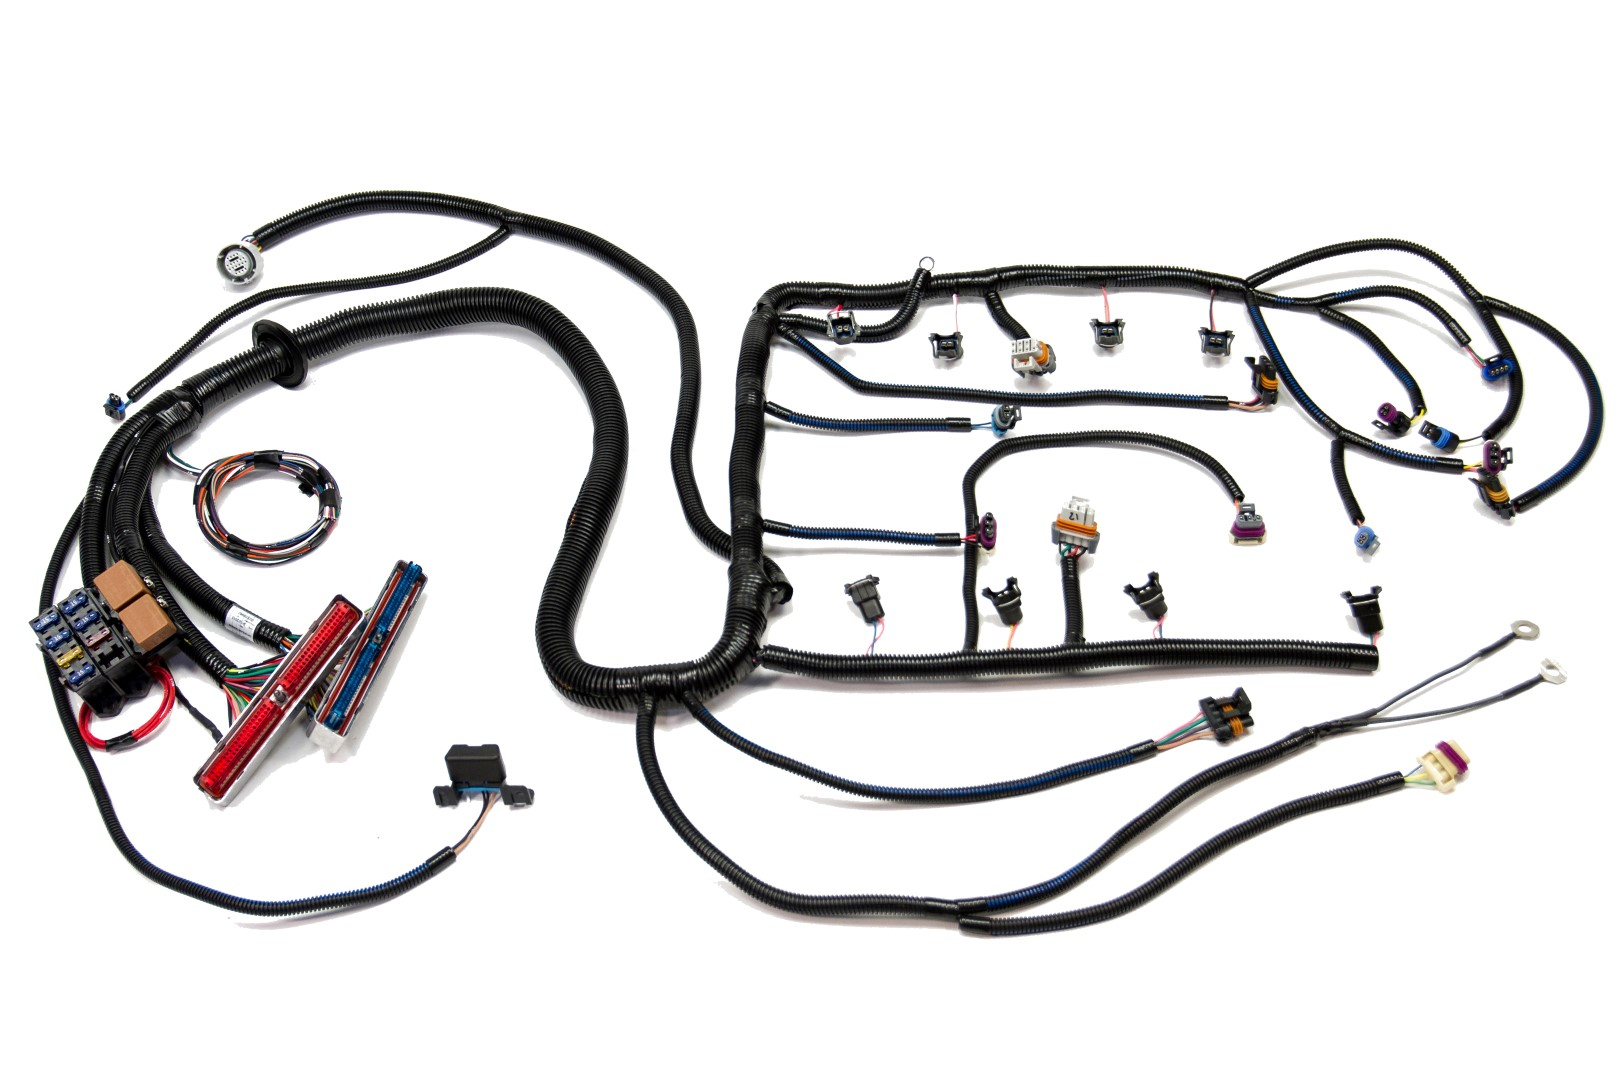 HAR 1012 psi wiring harness ls psi ls wiring harness \u2022 free wiring diagrams how to make a stand alone lt1 wiring harness at aneh.co